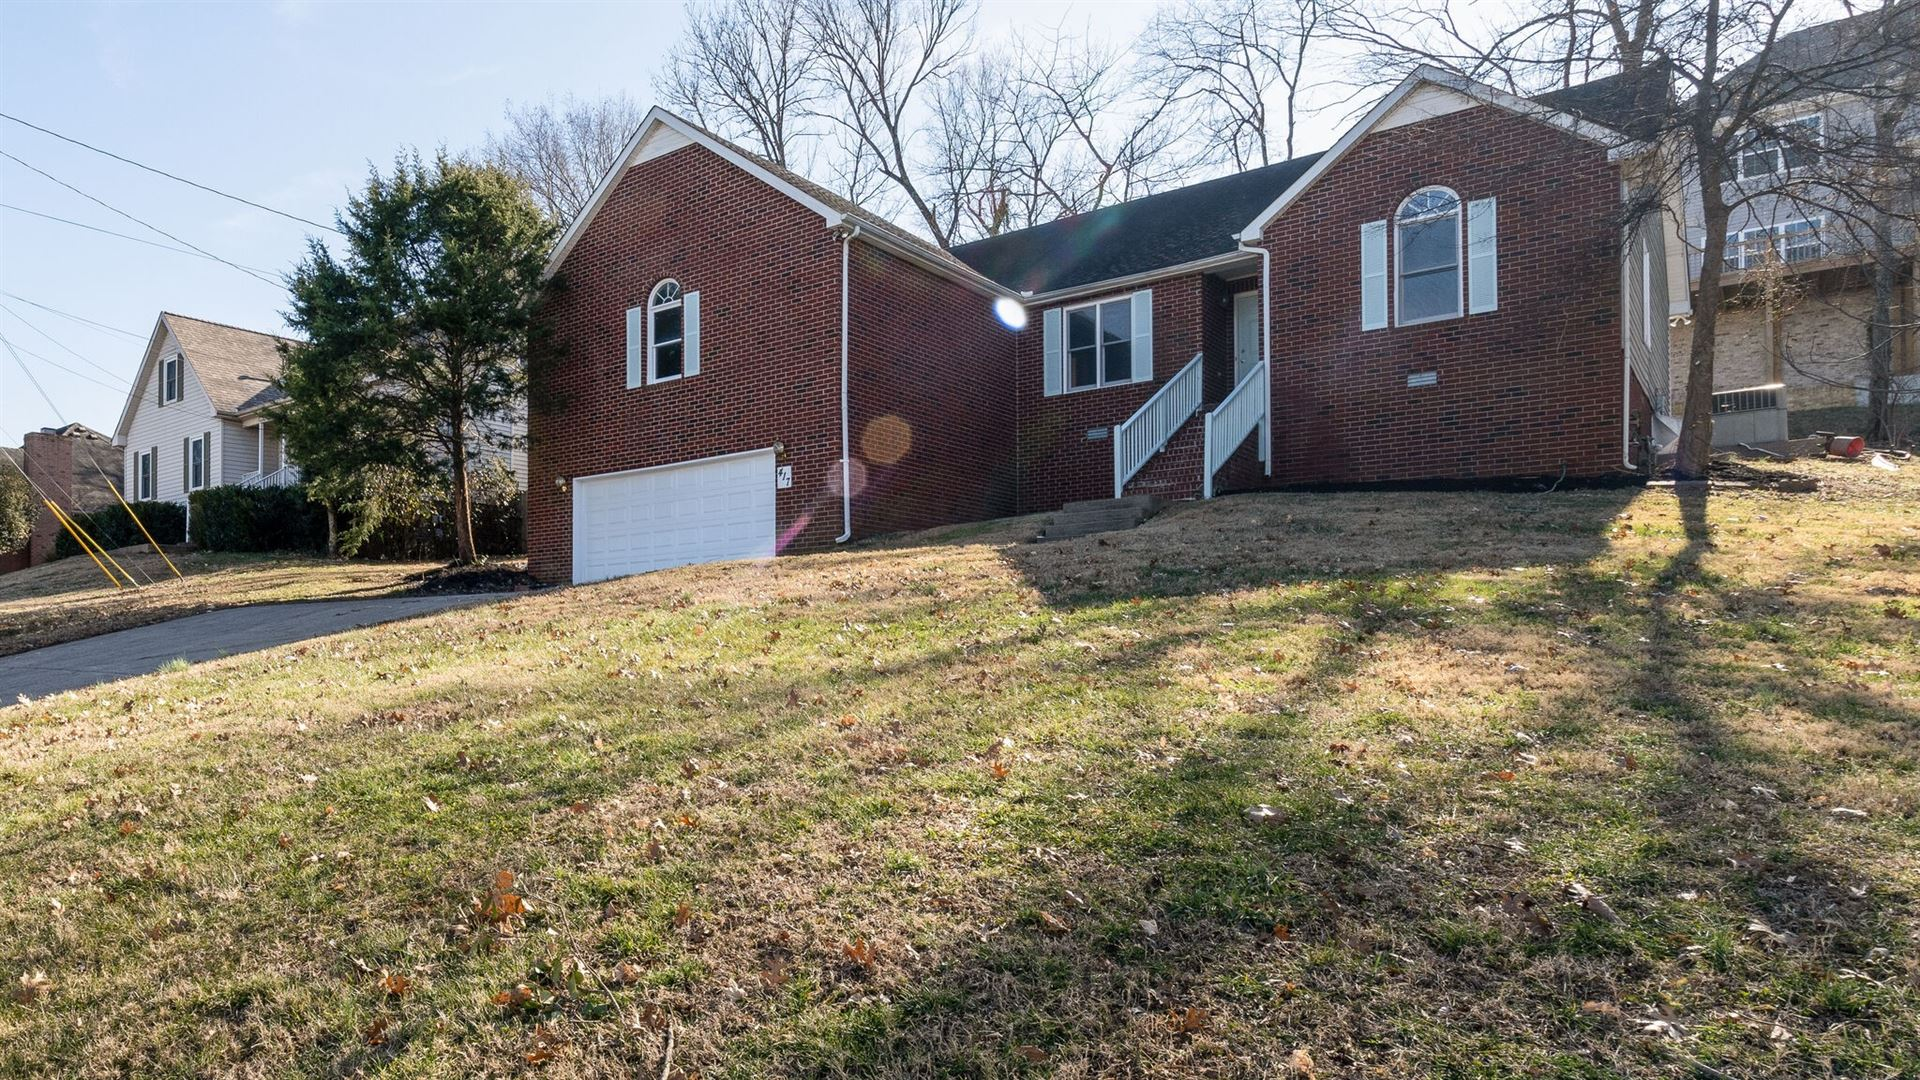 417 Saint Francis Ave, Smyrna, TN 37167 - MLS#: 2222266